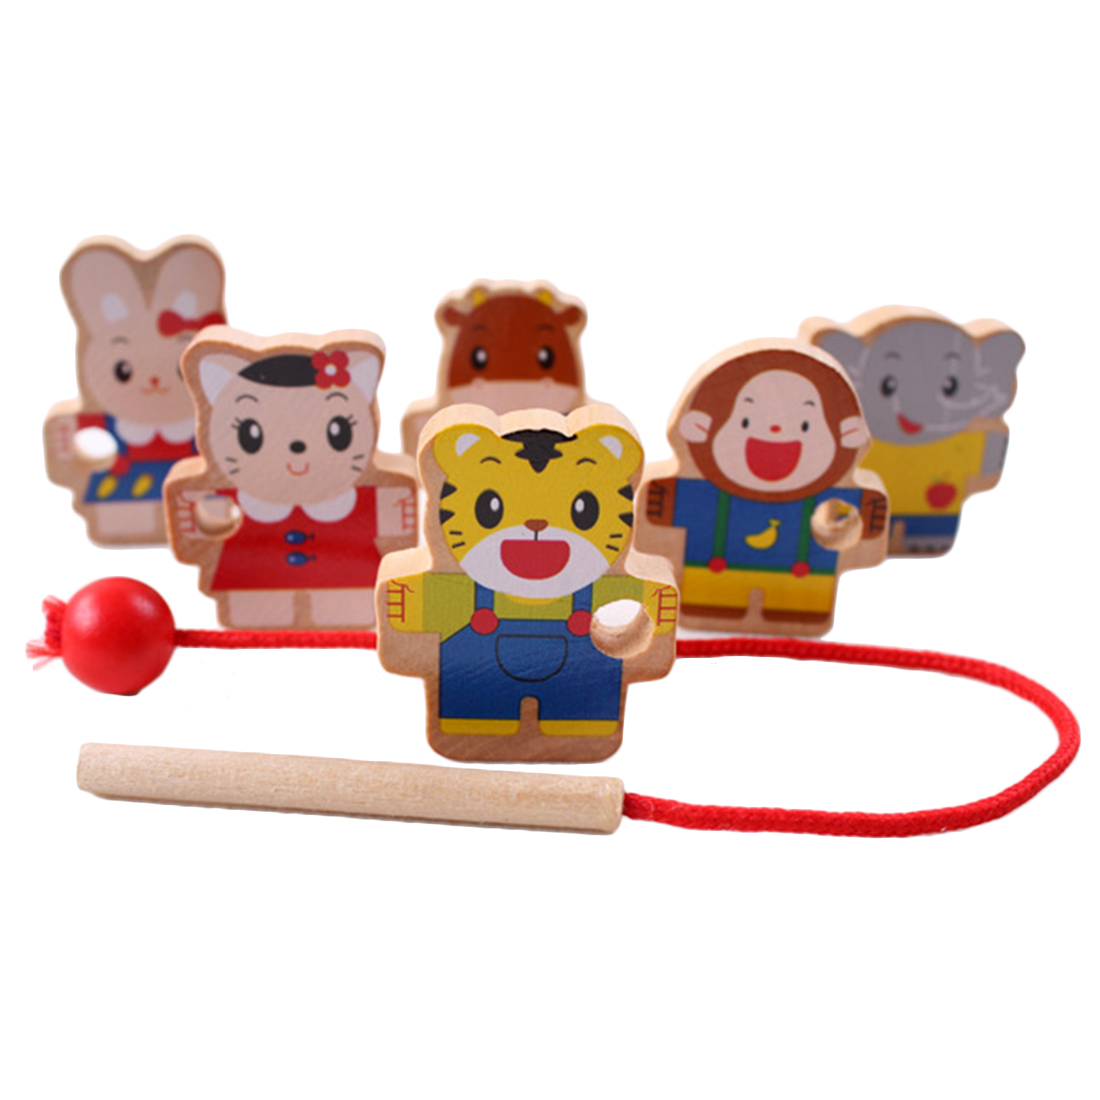 New Wooden Toys Baby Diy Toy Cartoon Animal Stringing Threading Wooden Beads Toy Monterssori Educational For Baby Kids Children